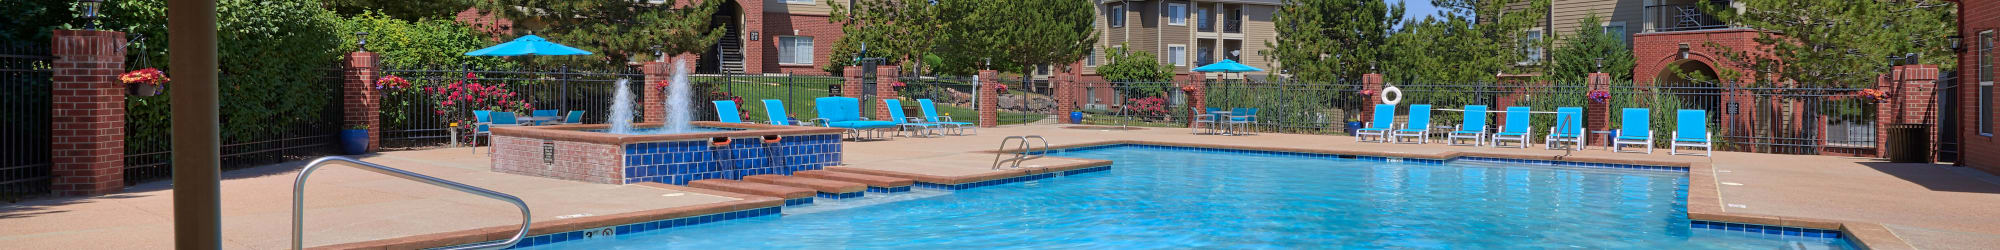 Pet Friendly at Skyecrest Apartments